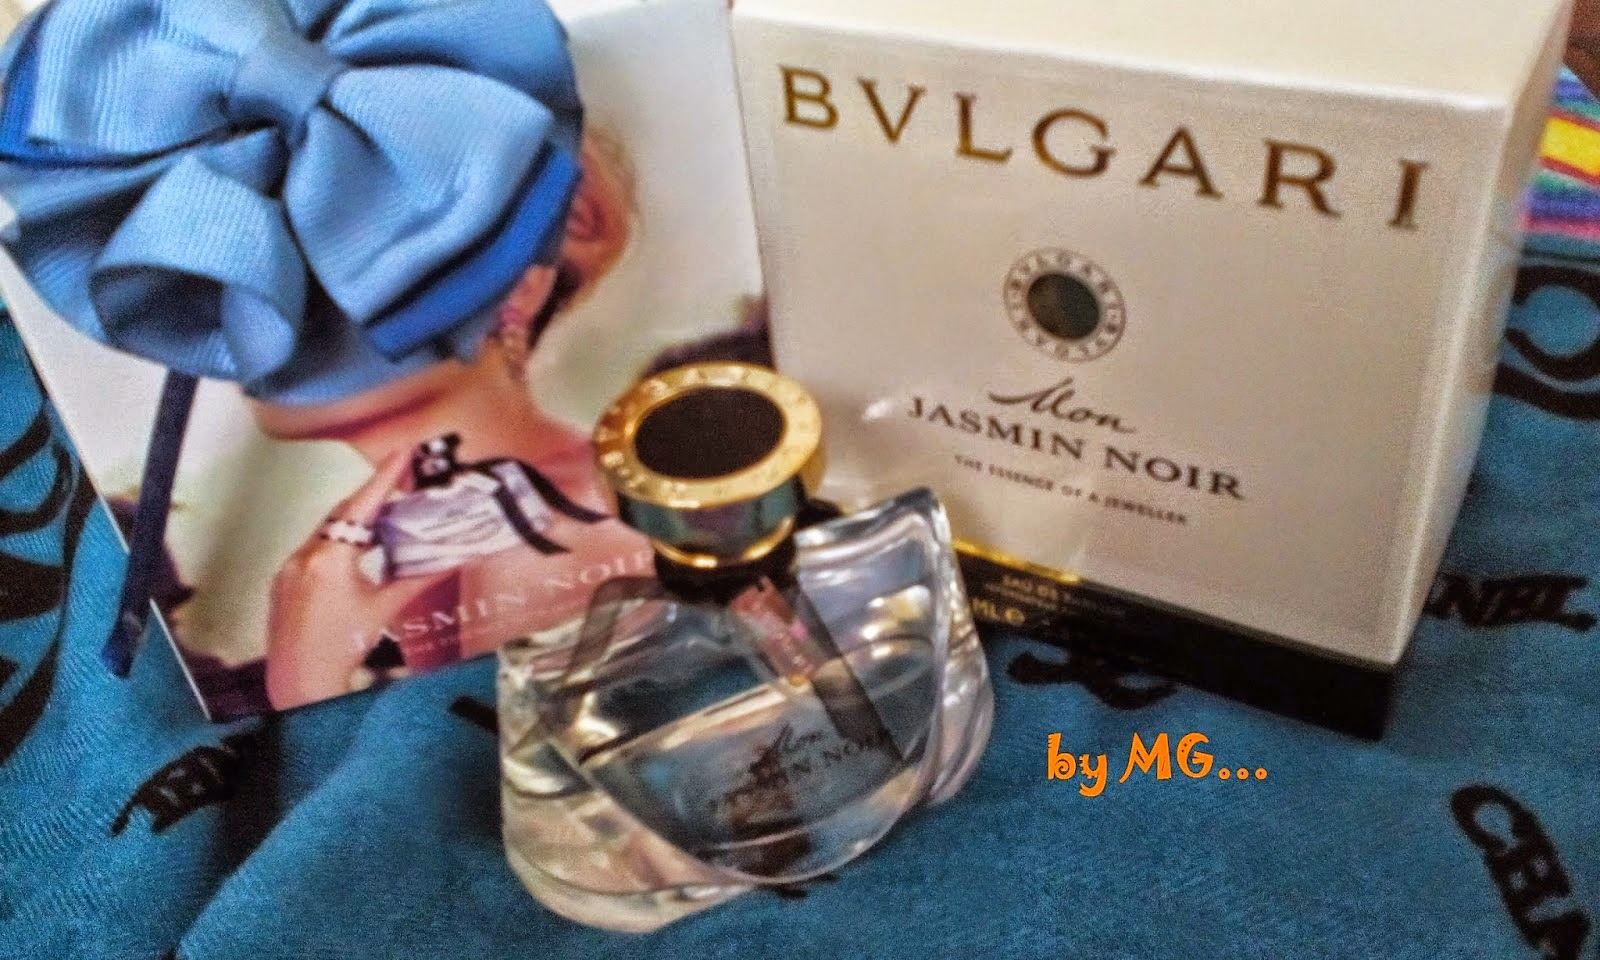 http://melangkaugarisan.blogspot.com/2014/08/1st-giveaway-by-melangkau-garisan-with.html